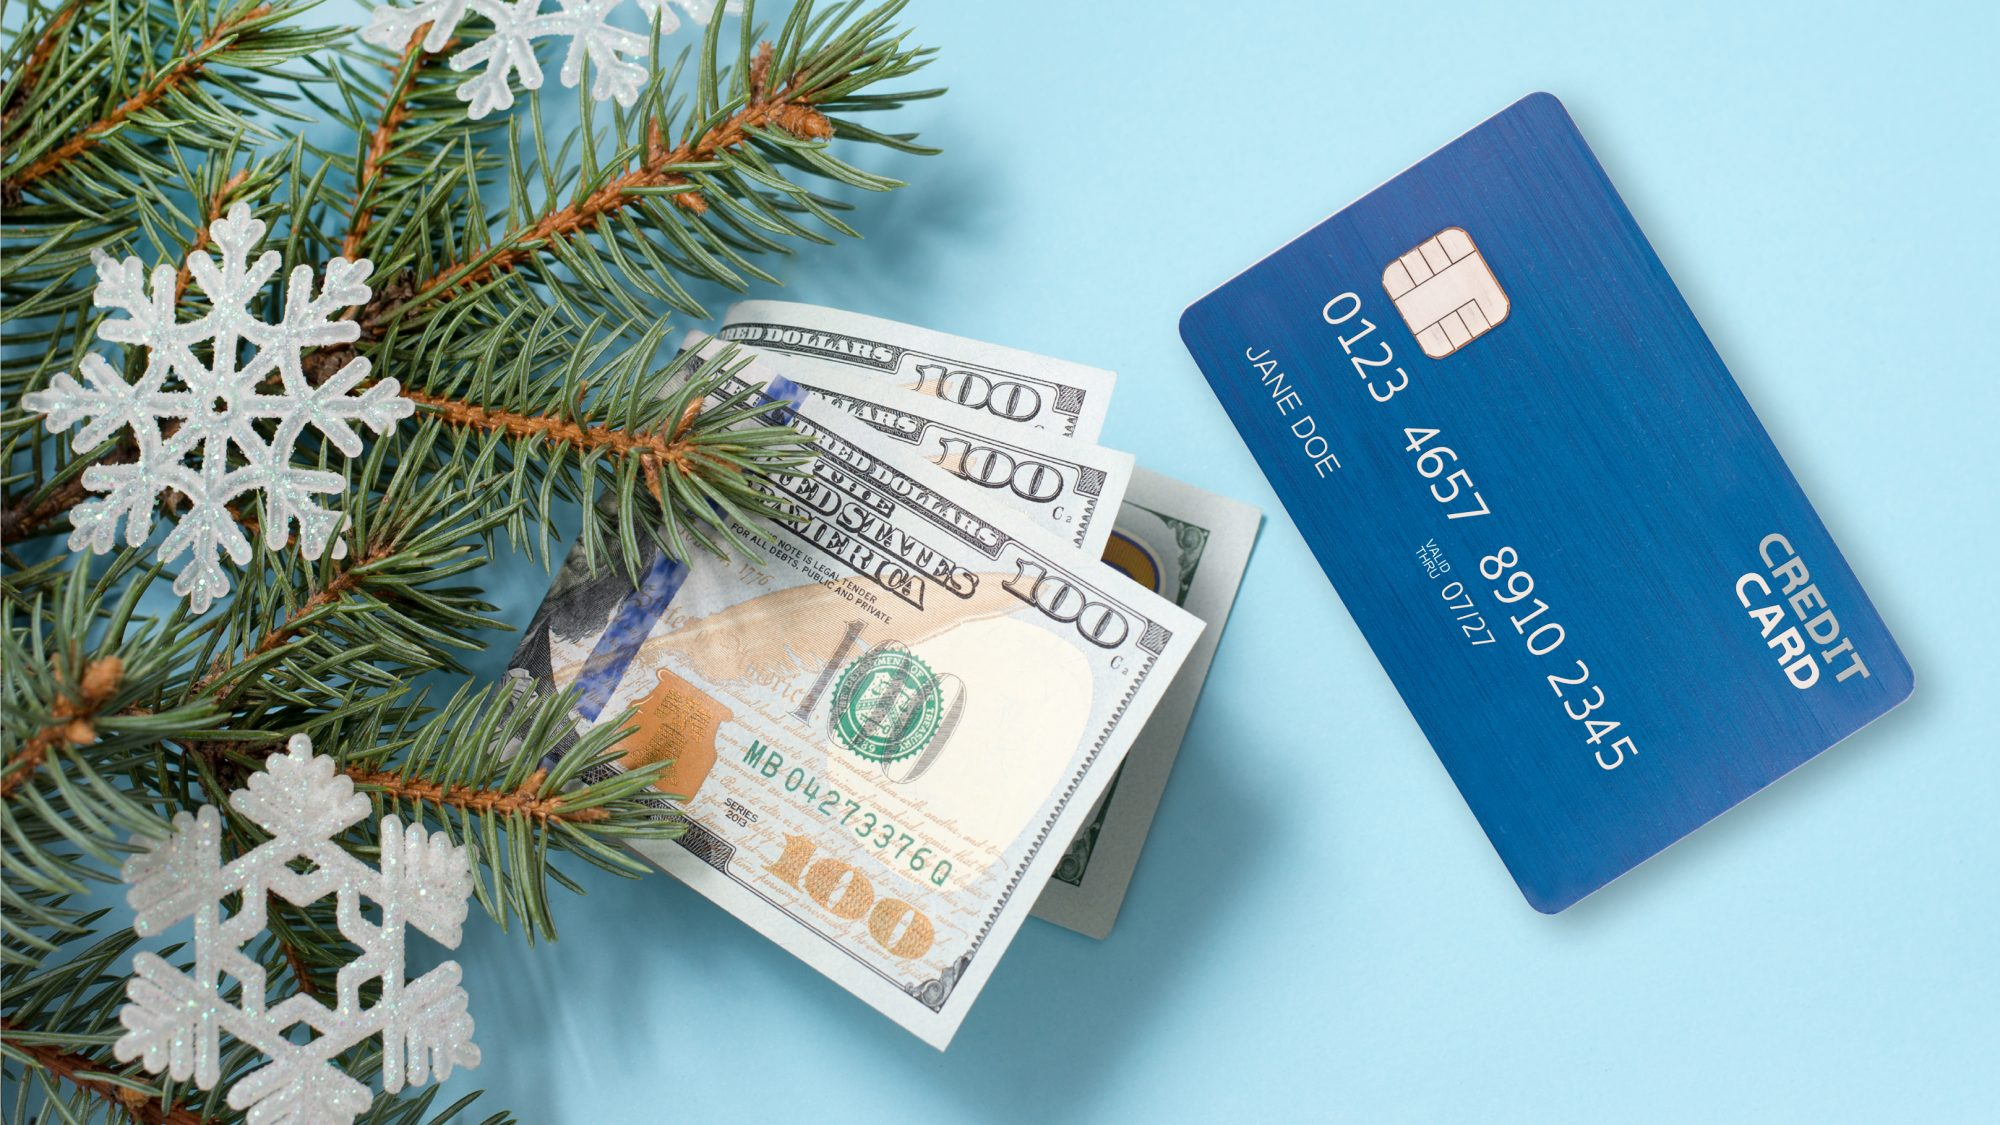 Debit vs credit vs cash for holiday shopping - cash and card